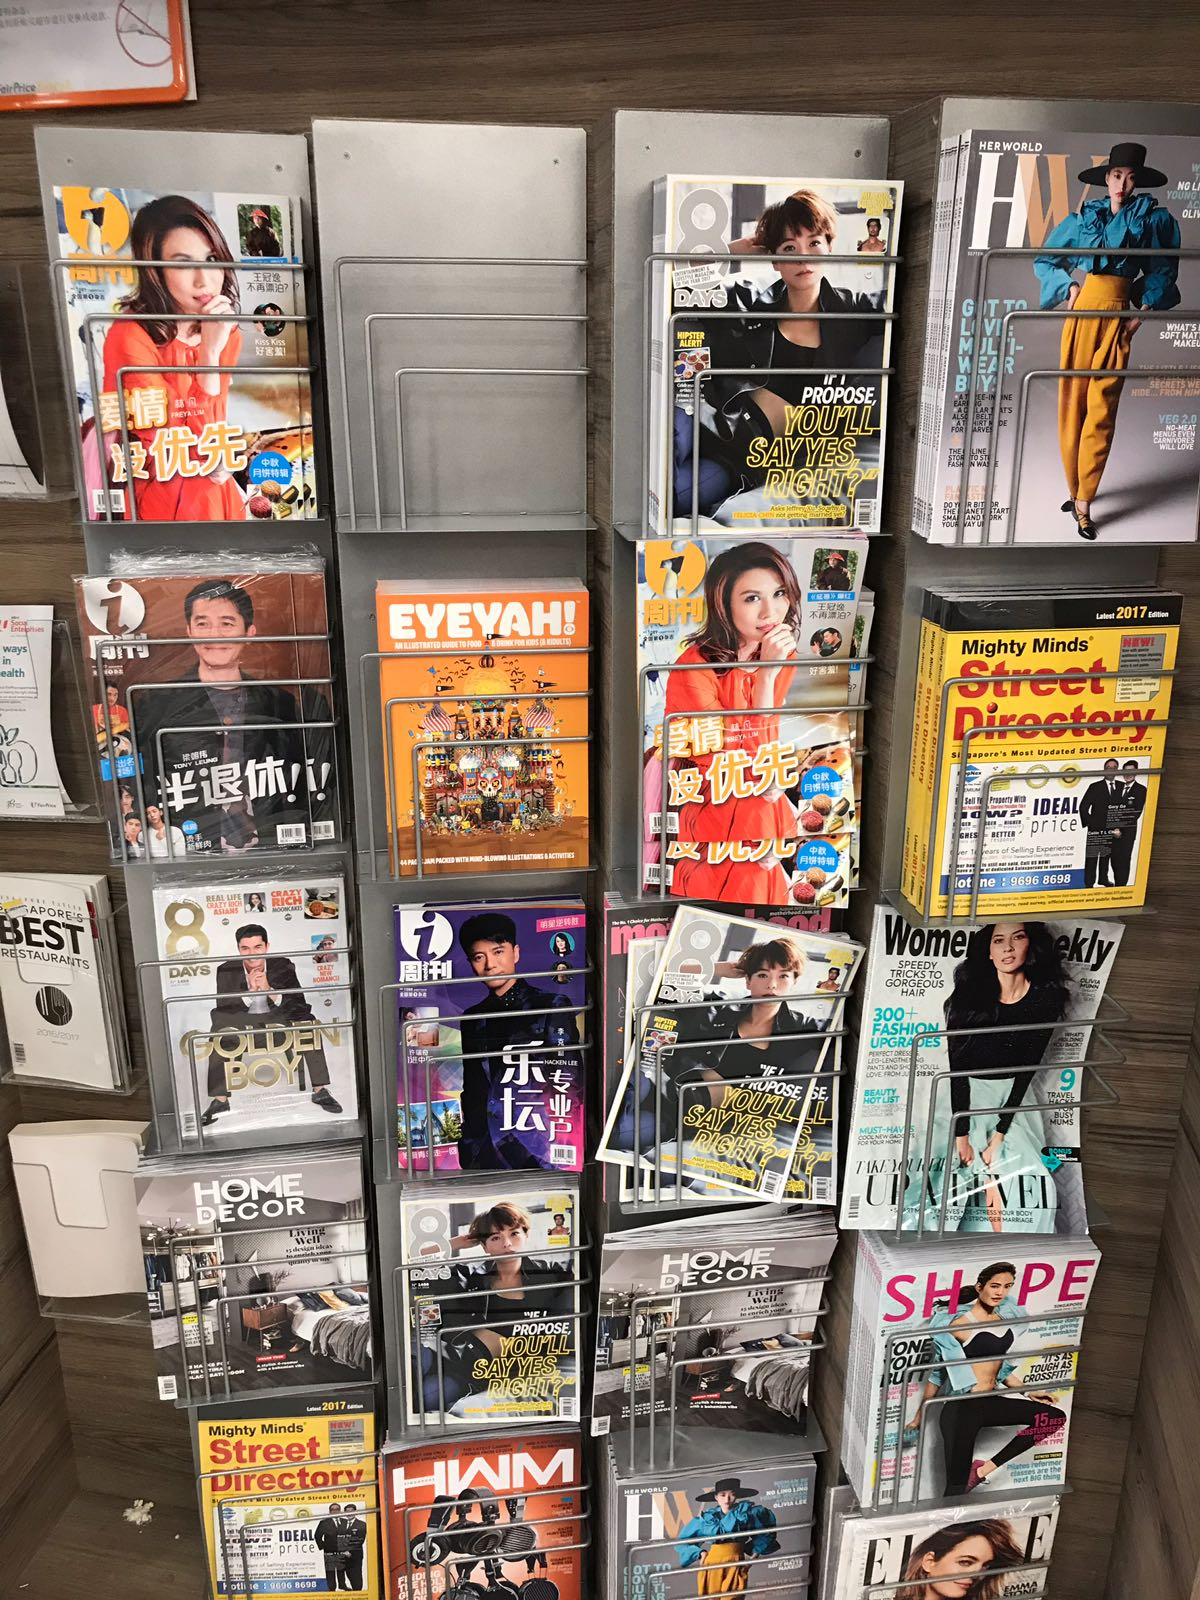 EYEYAH! Food issue in the magazines rack